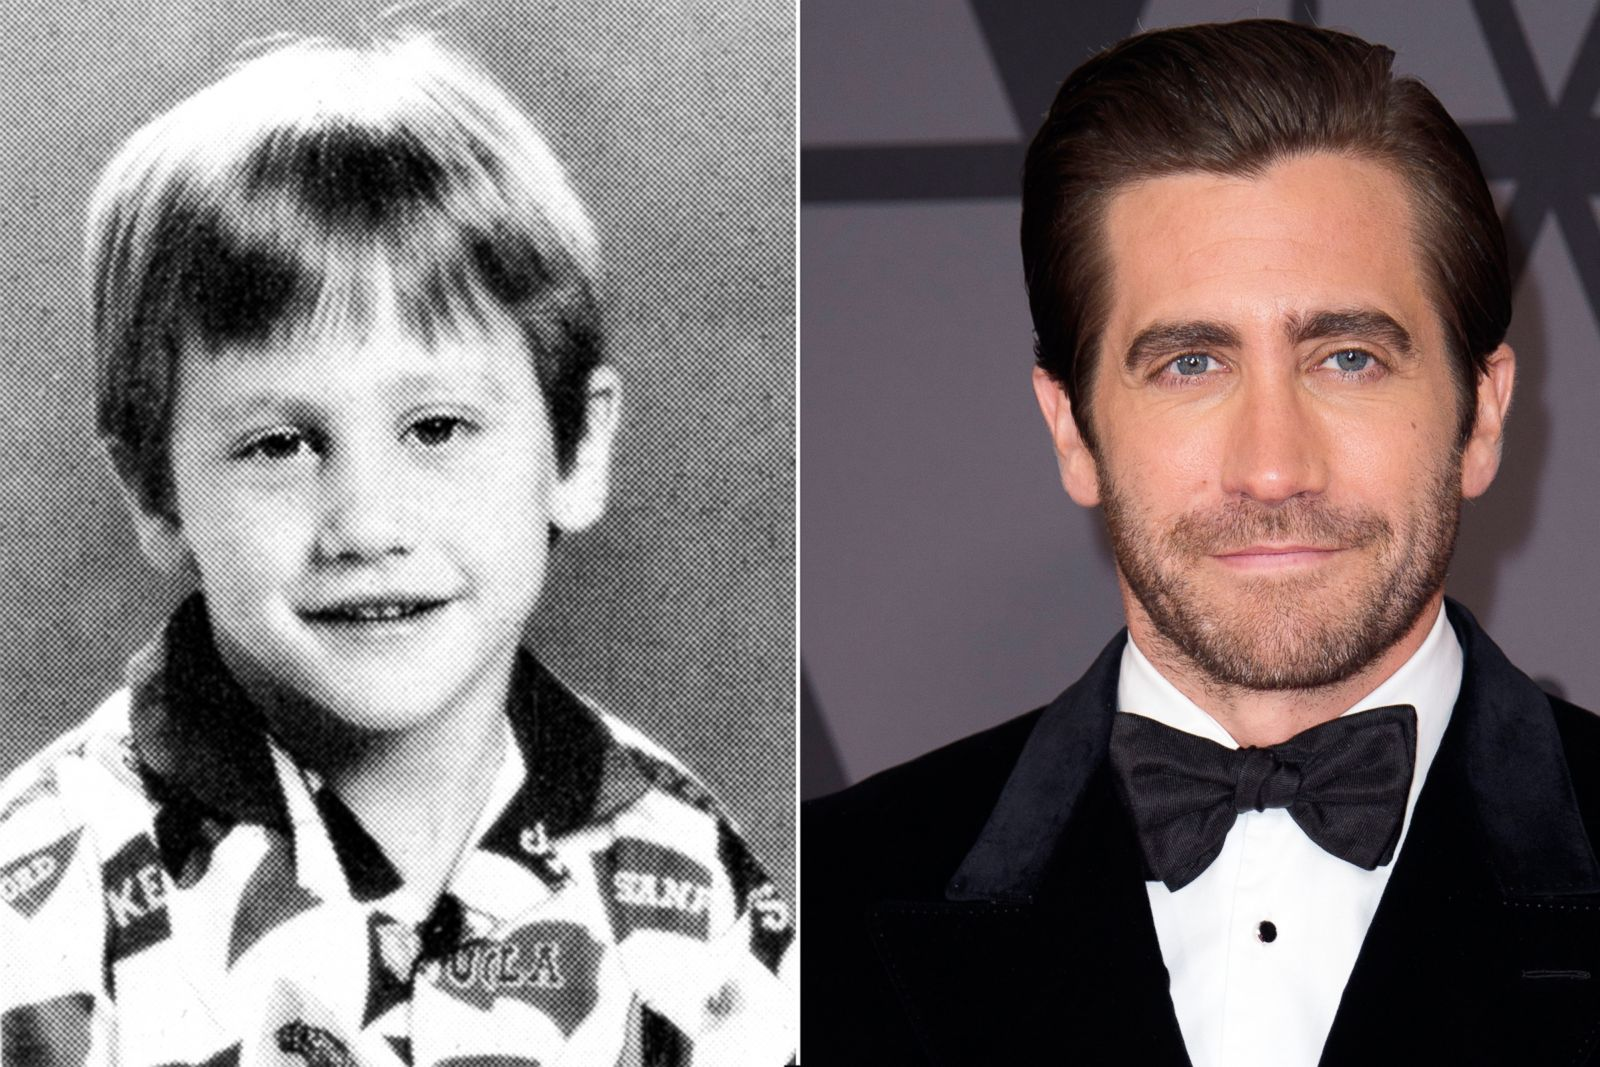 ' ' from the web at 'https://s.abcnews.com/images/Entertainment/jake-gyllenhaal-ht-gty-ml-171219_3x2_1600.jpg'